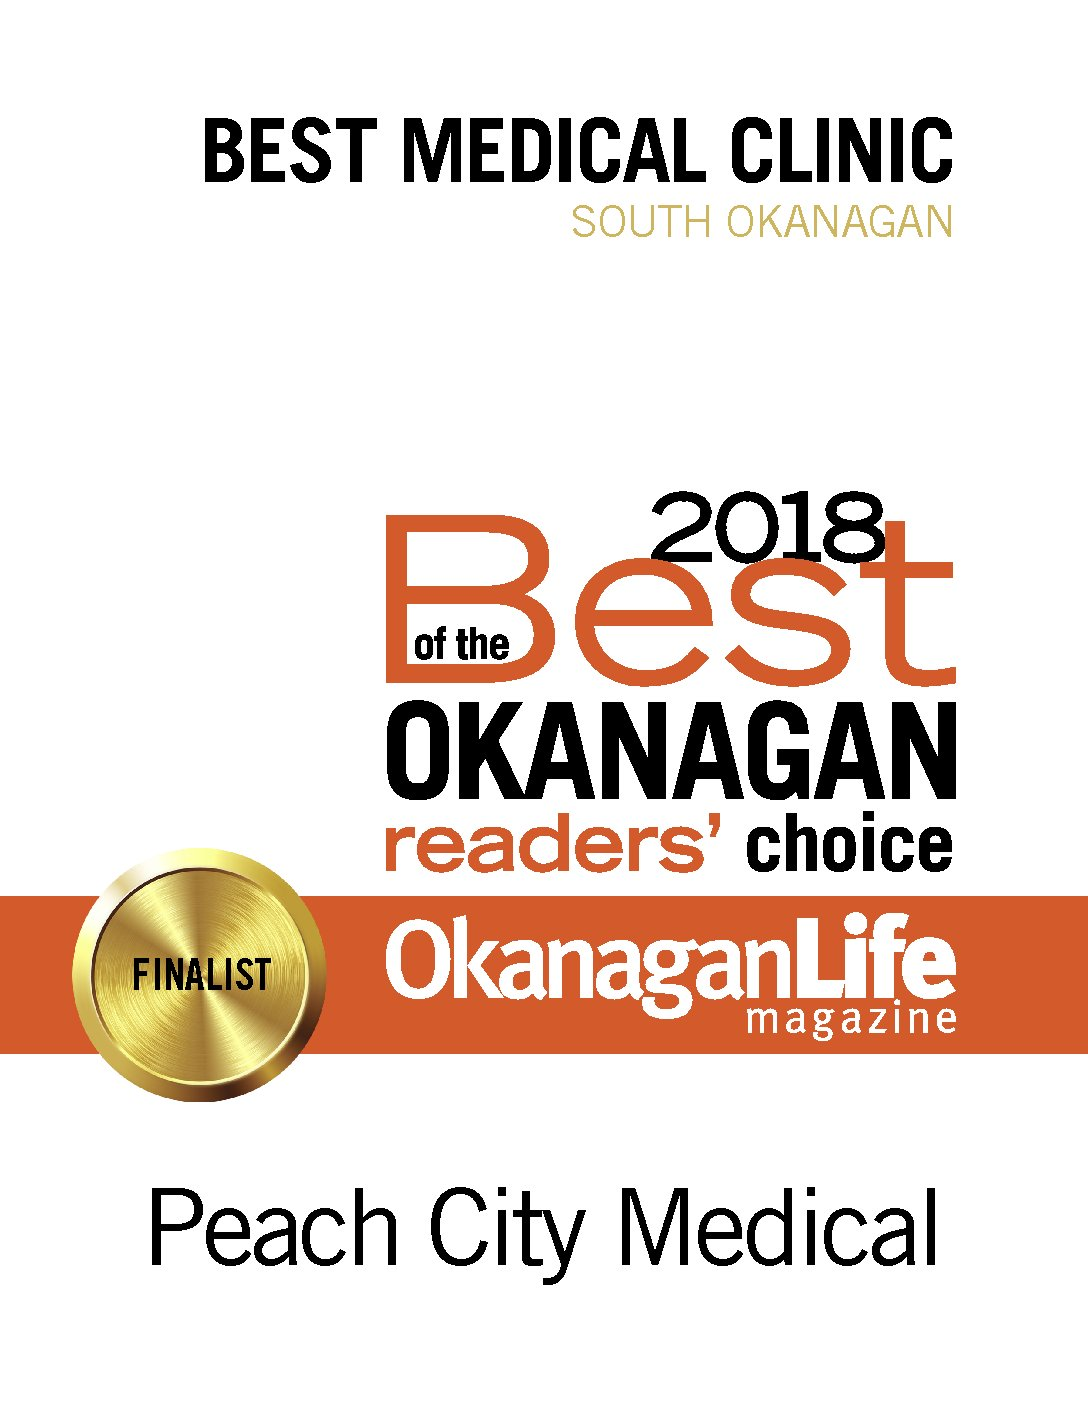 Peach City Medical